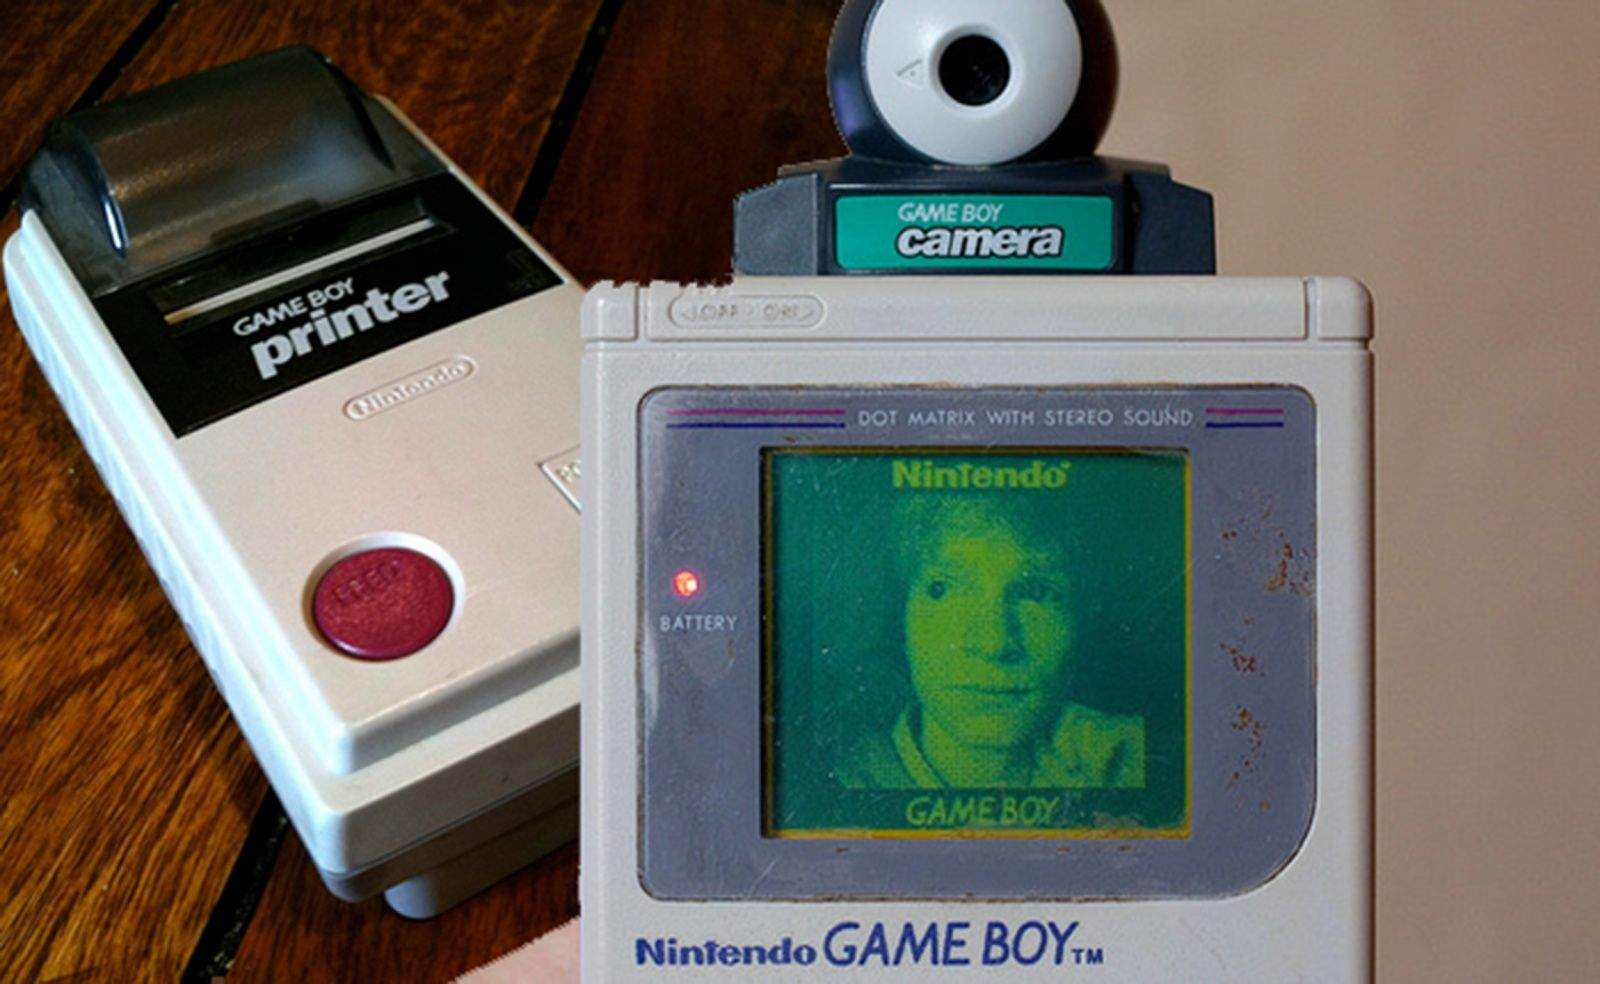 Towards the end of the life of the Game Boy player, Nintendo added a camera attachment. Photo: Solopress